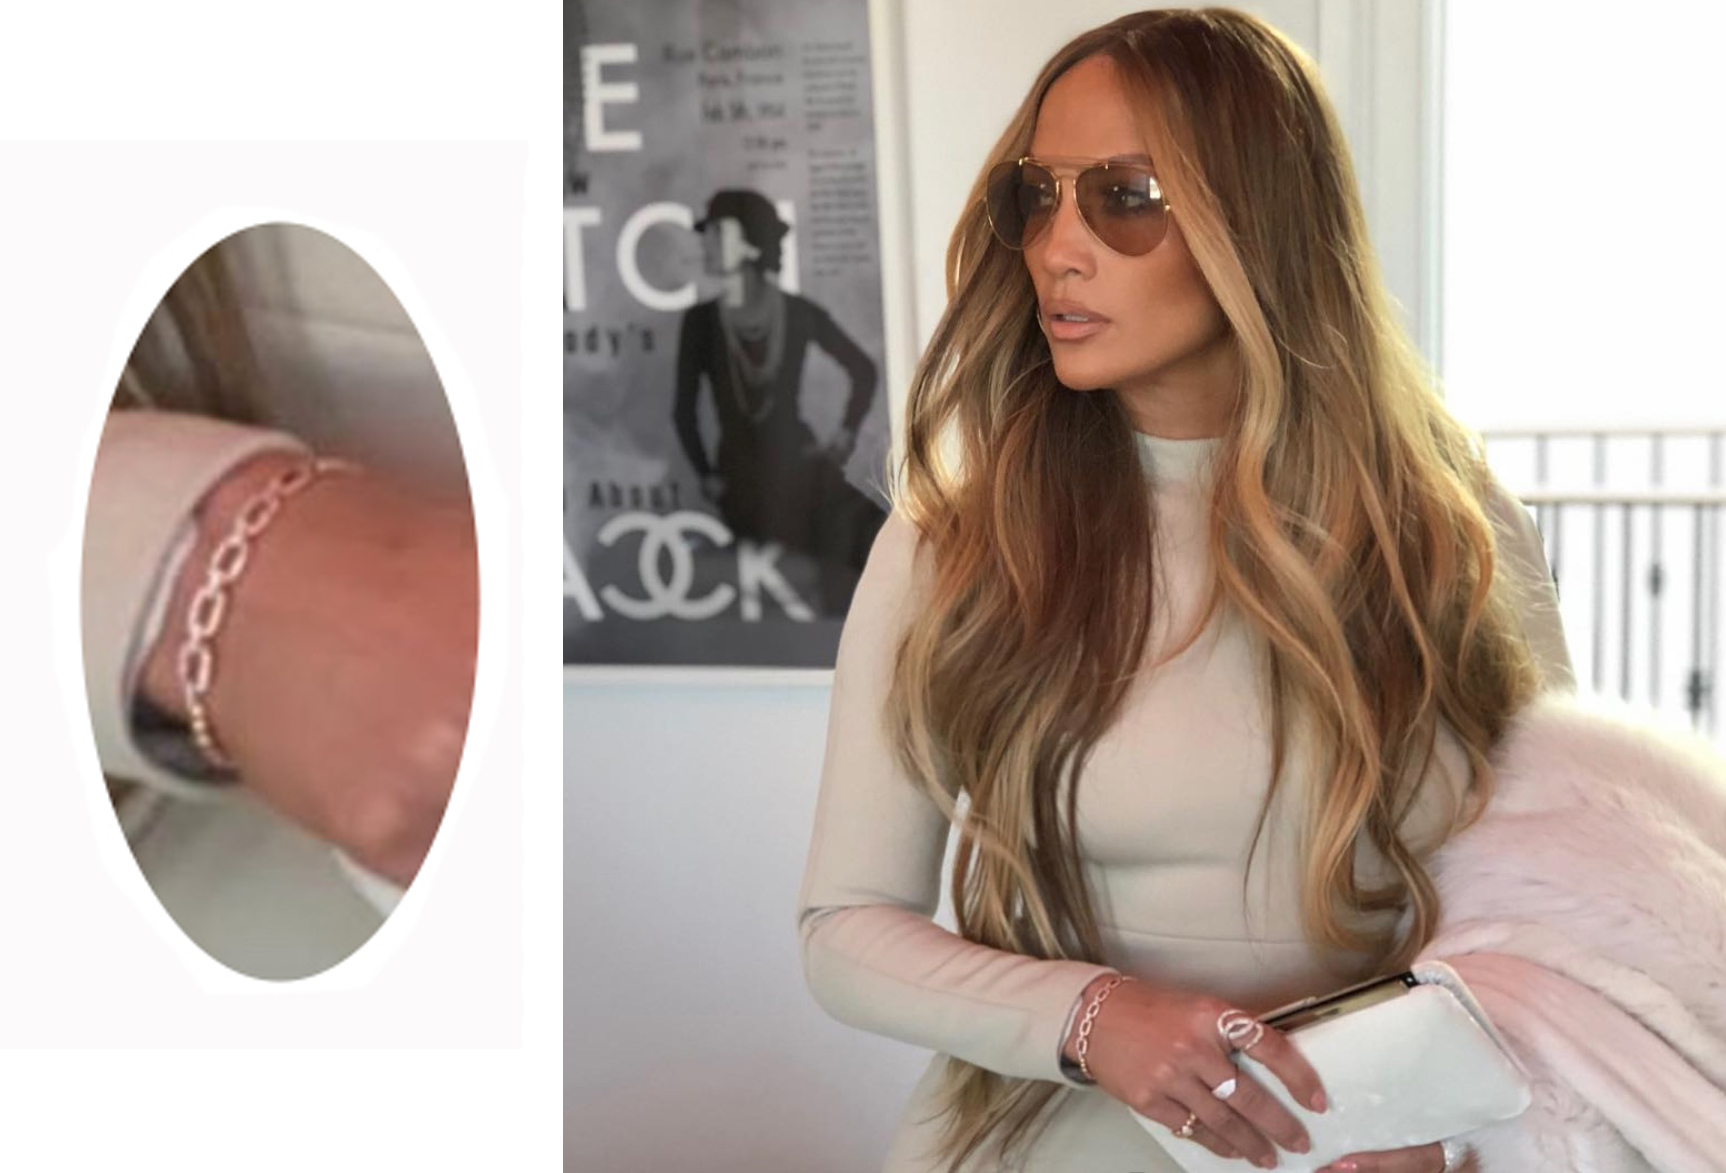 Jennifer Lopez Wearing Le Vian Bracelet on Instagram